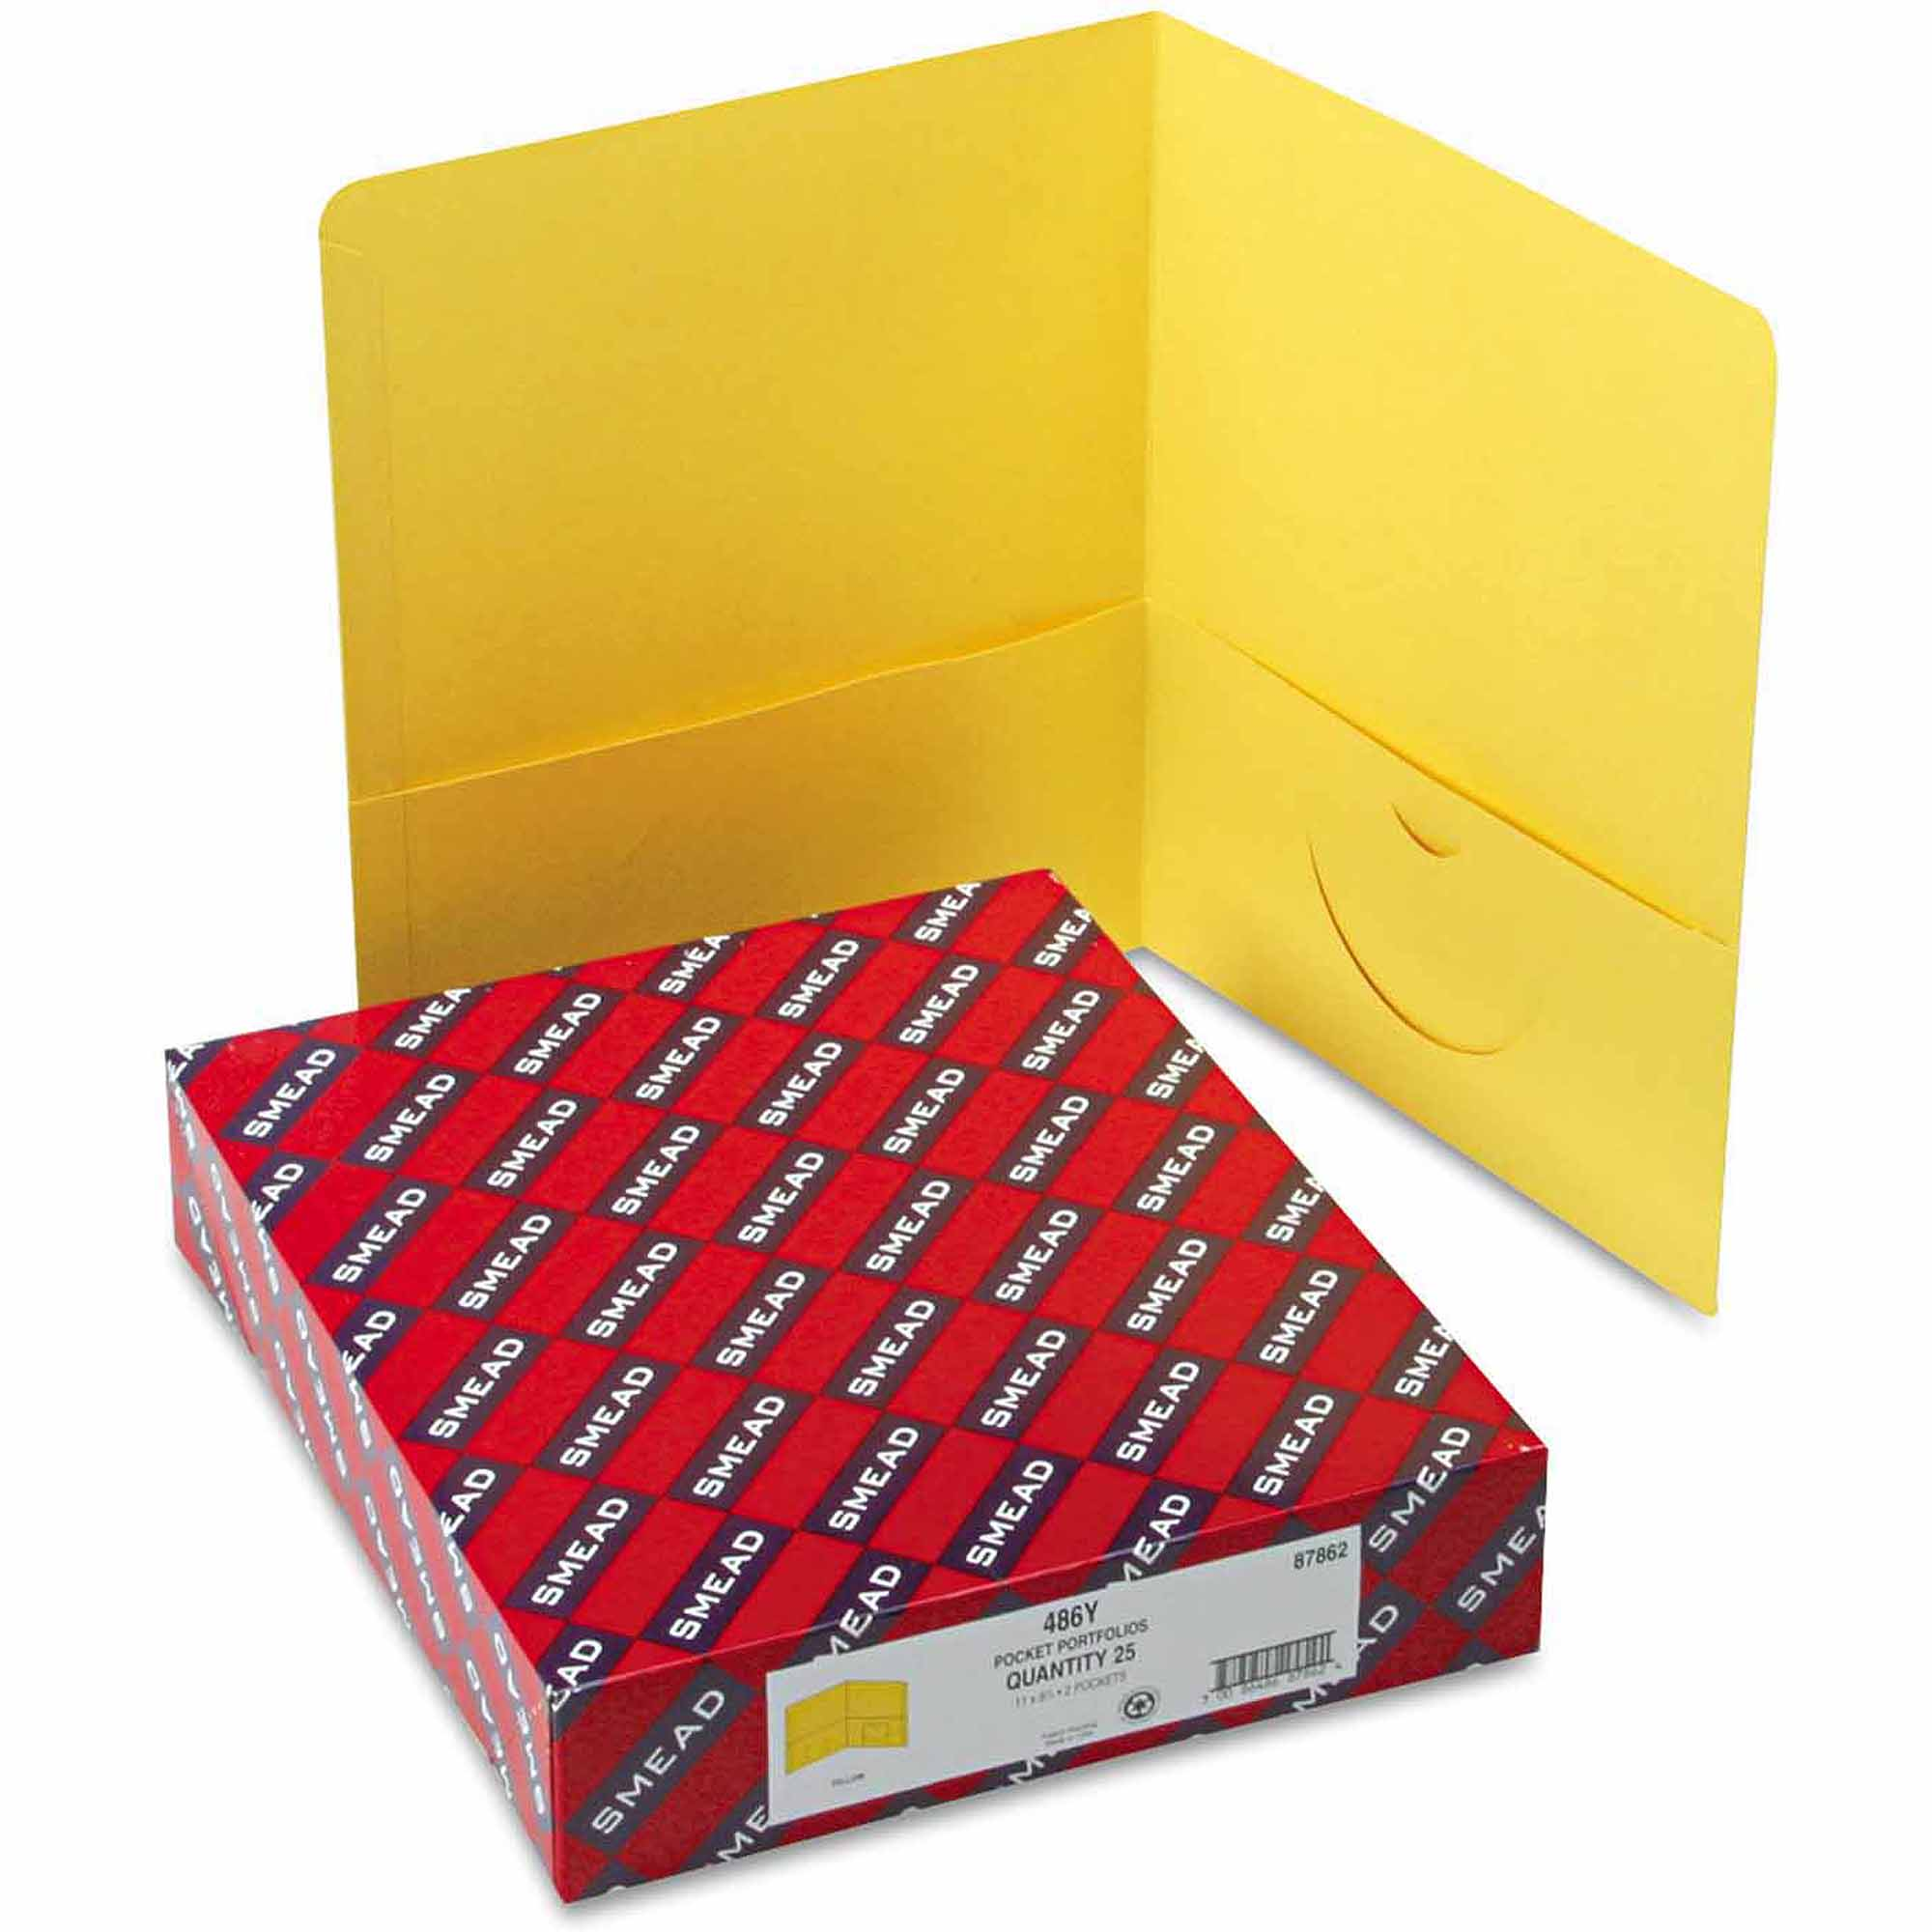 Smead Two-Pocket Portfolio, Embossed Leather Grain Paper, Yellow, 25/Box